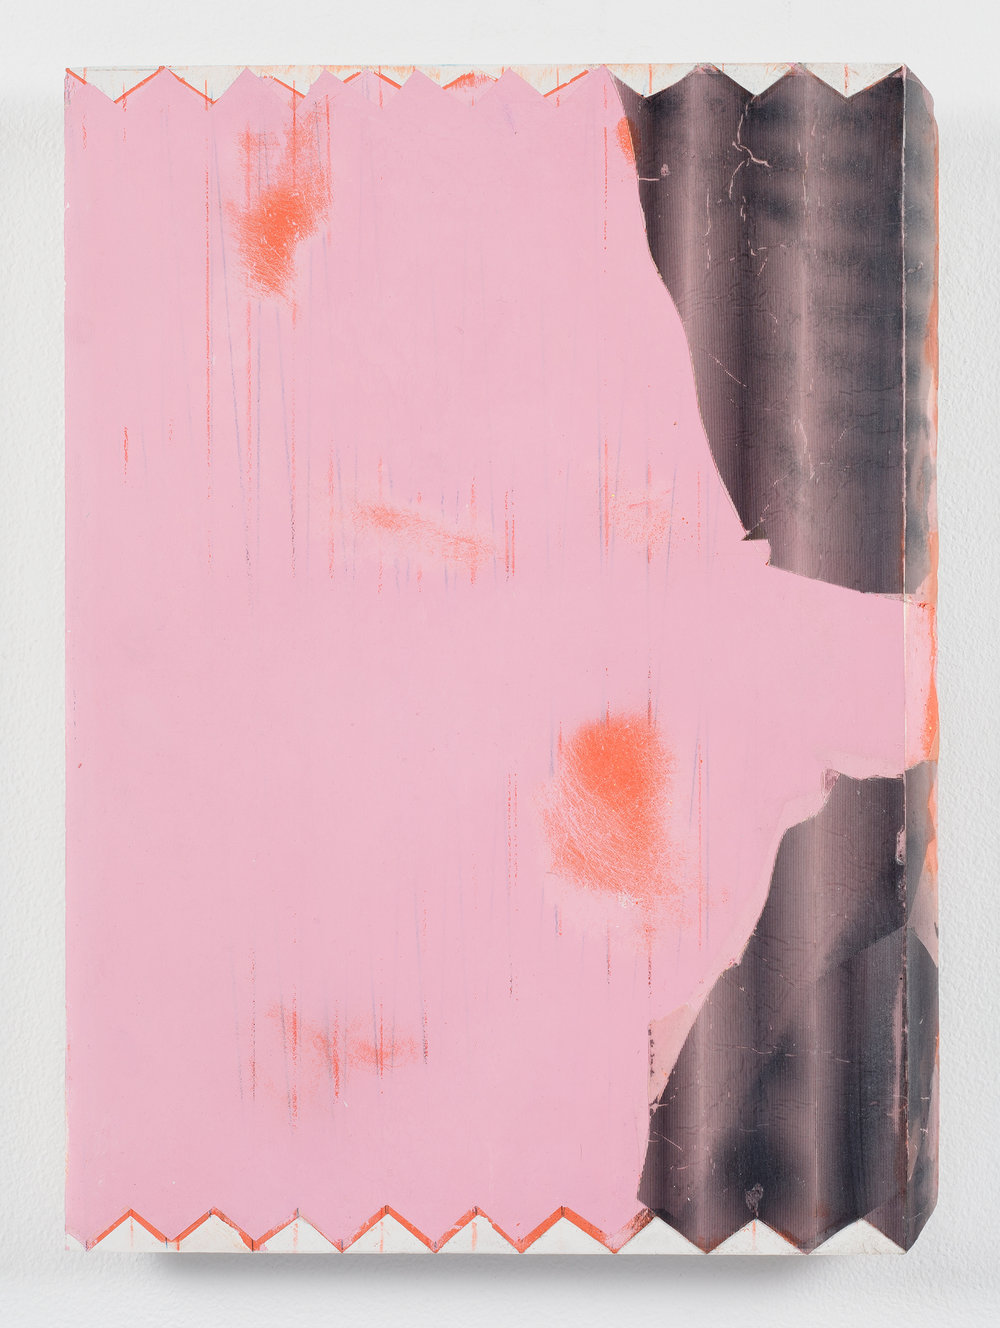 Nicolas Roggy,  Untitled (Pink),  2012, gesso, pencil, acrylic paint and collage on PVC, 15.5 x 11.5 in.